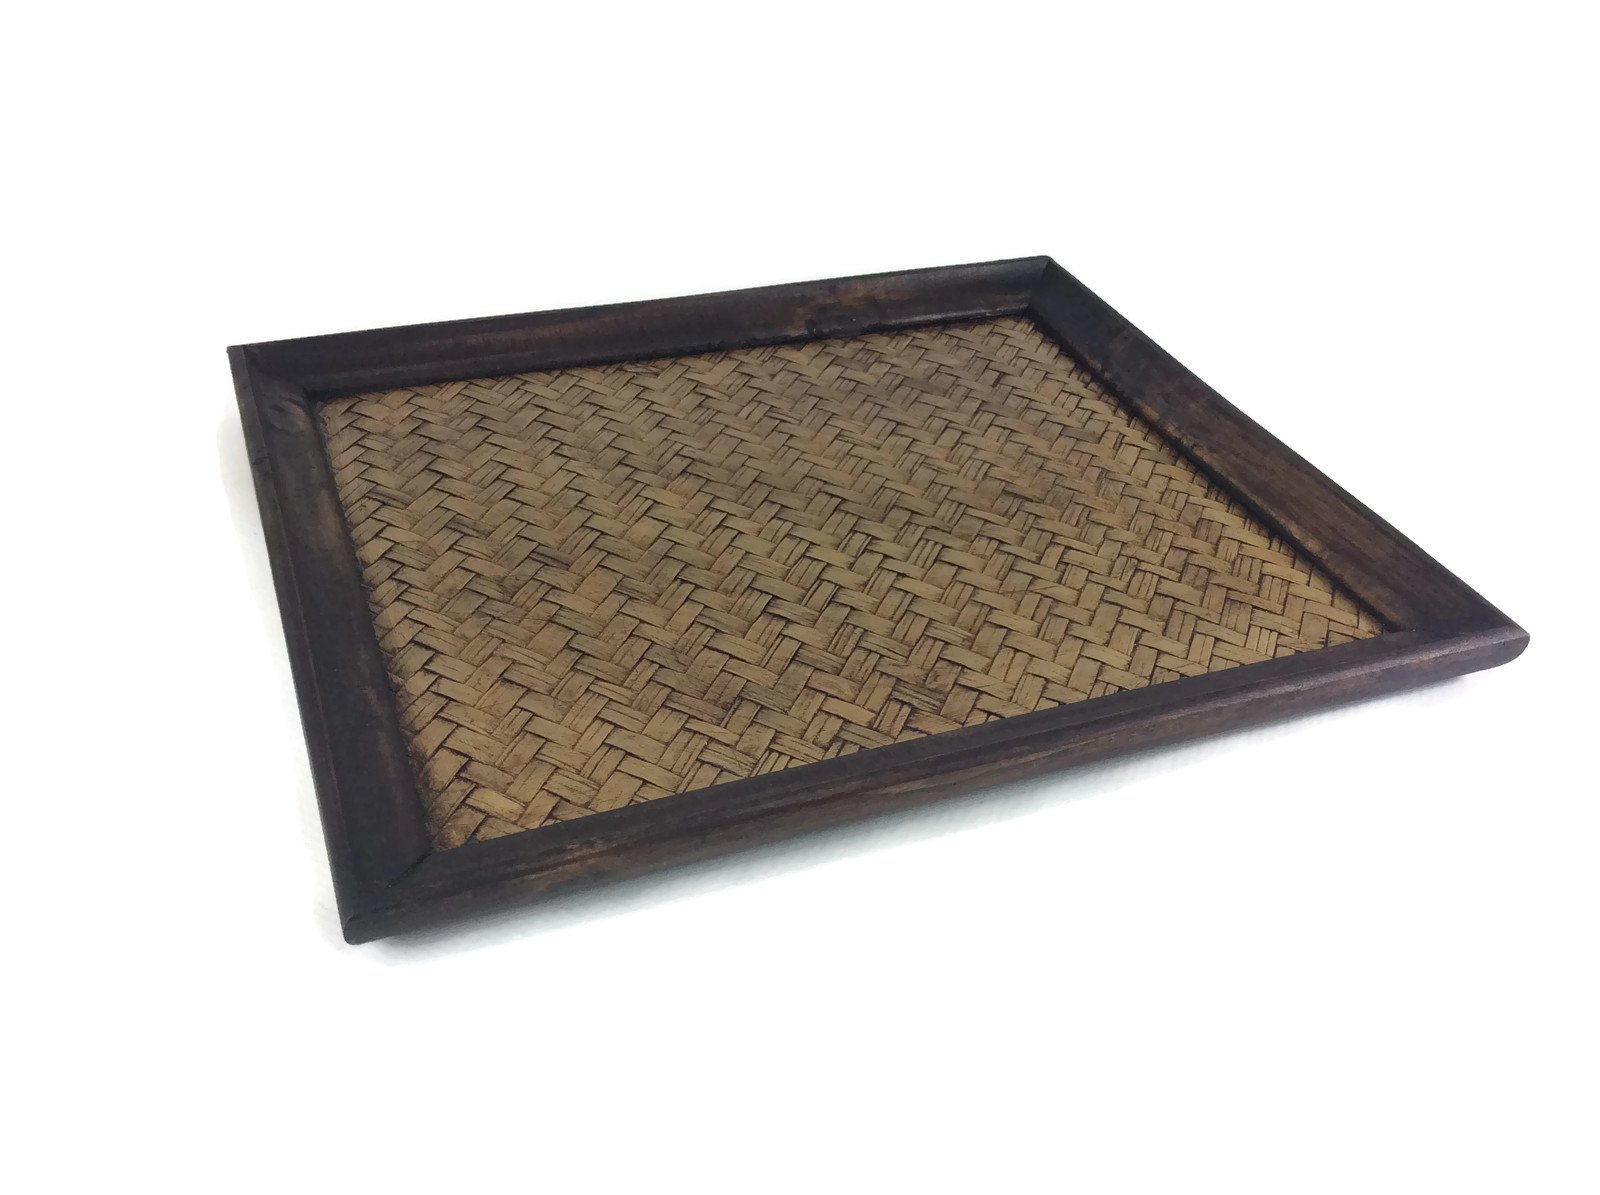 Tray Serving Handmade Bamboo Oriental Wood Vintage Restaurant Wooden Handcraft 10 x 12 Inches